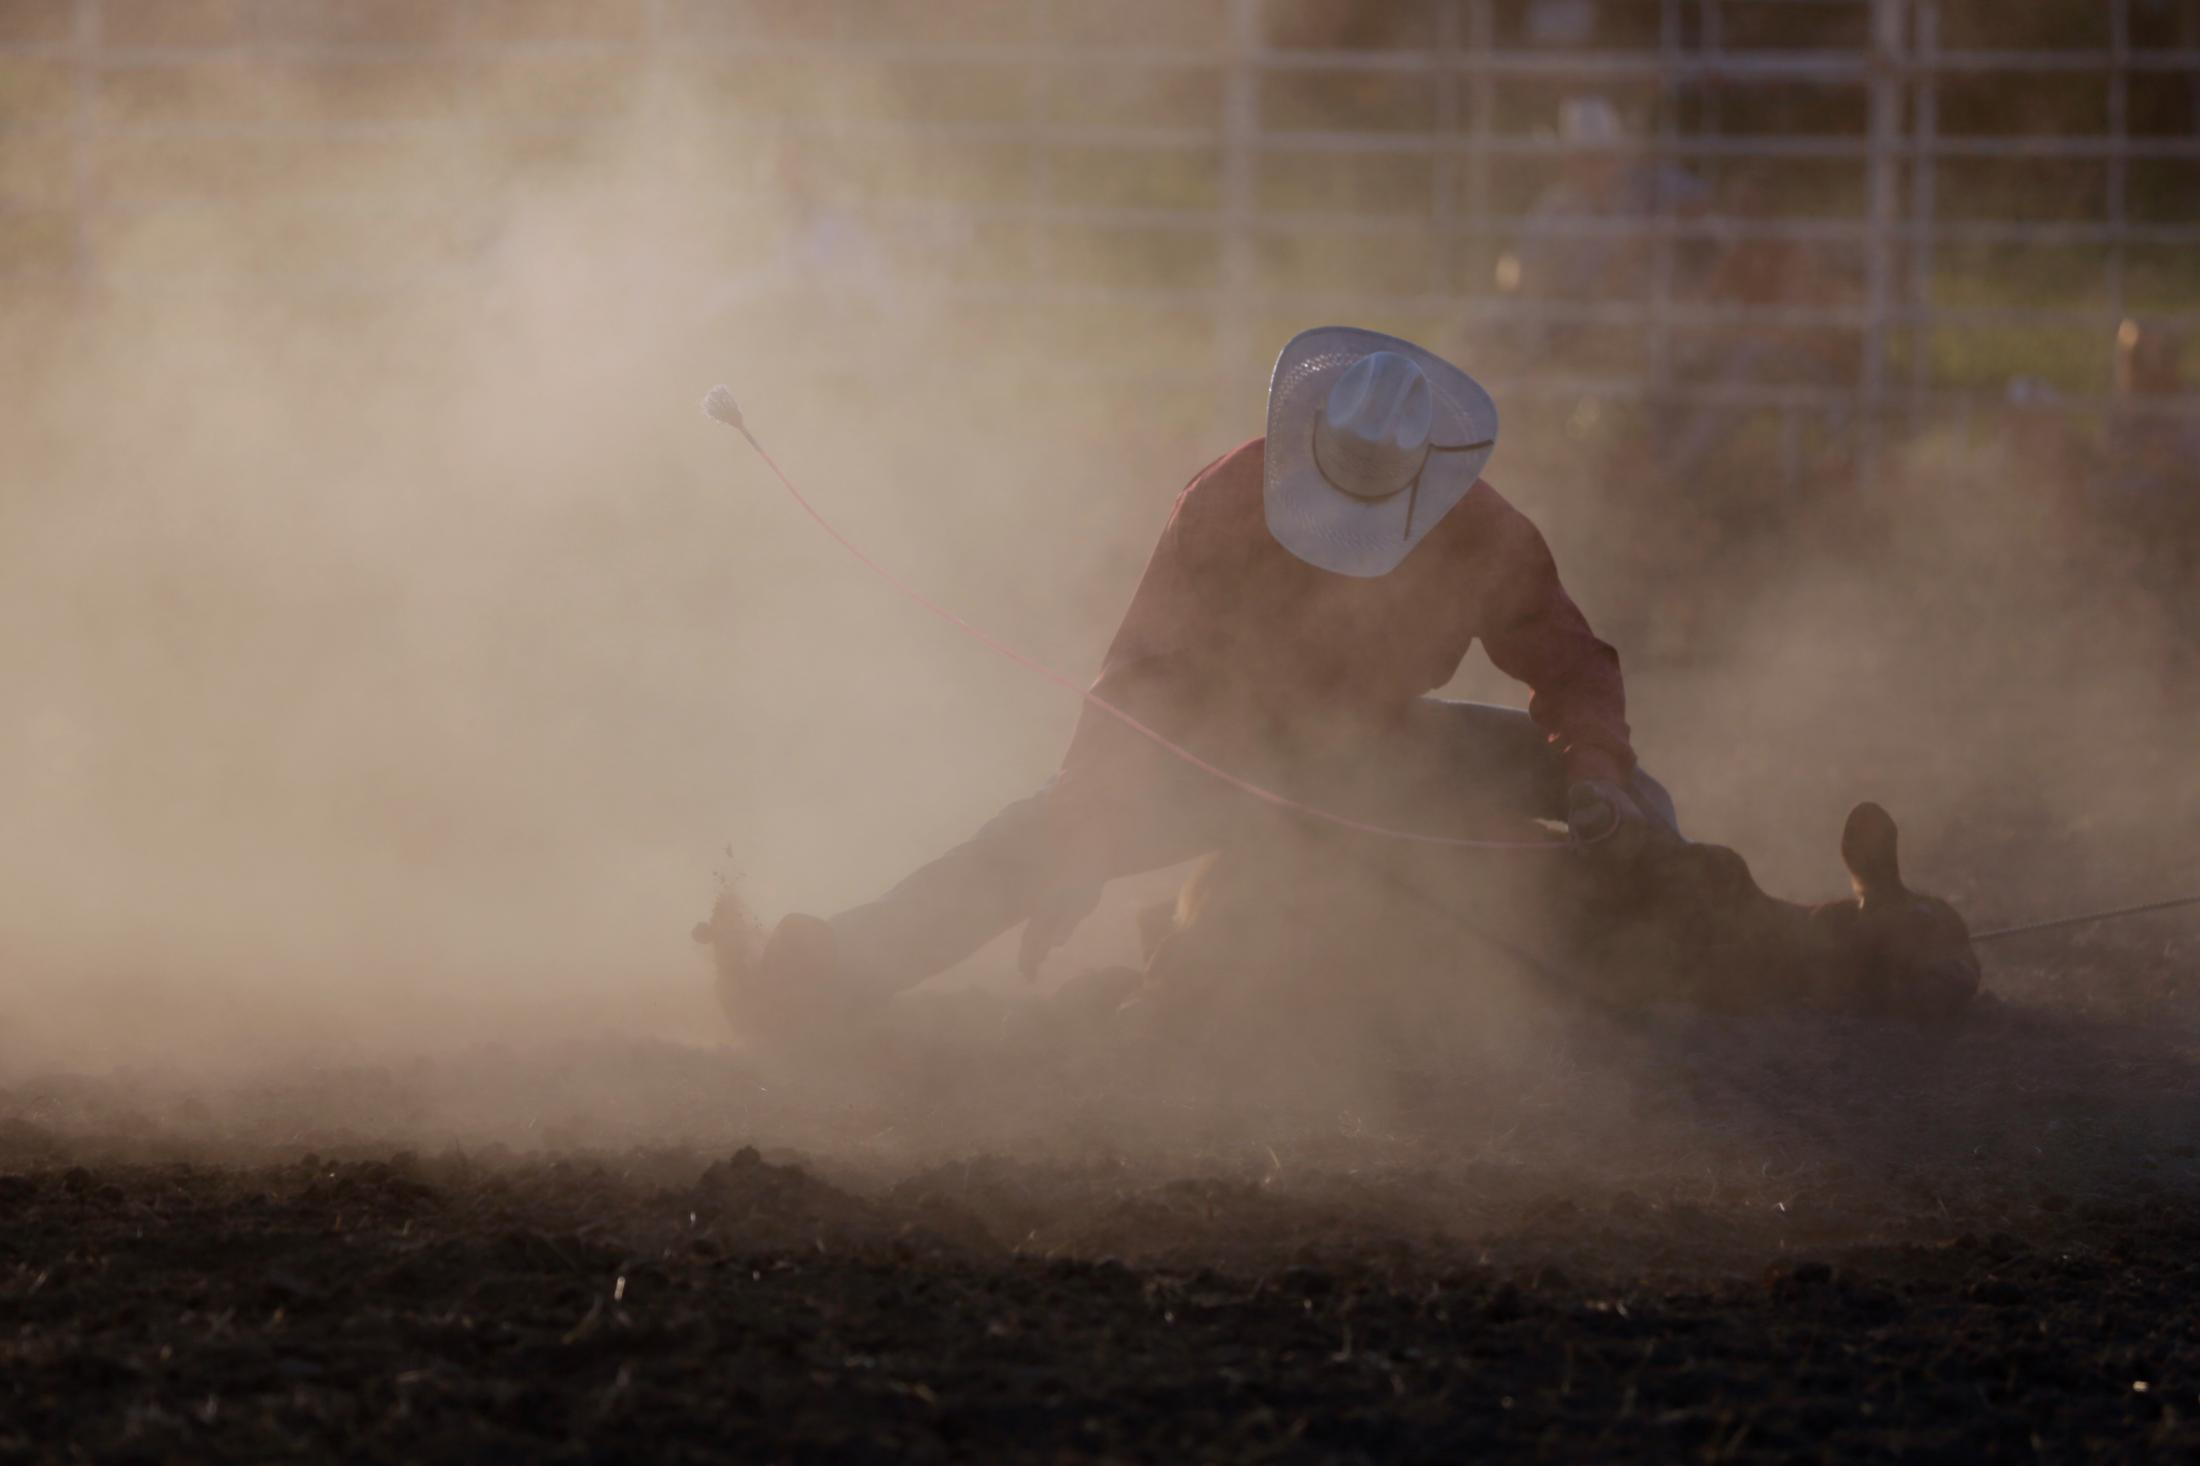 Dust flies as a cowboy hog ties a calf during the annual Saline County rodeo on July 13, 2019 in Marshall, Missouri.